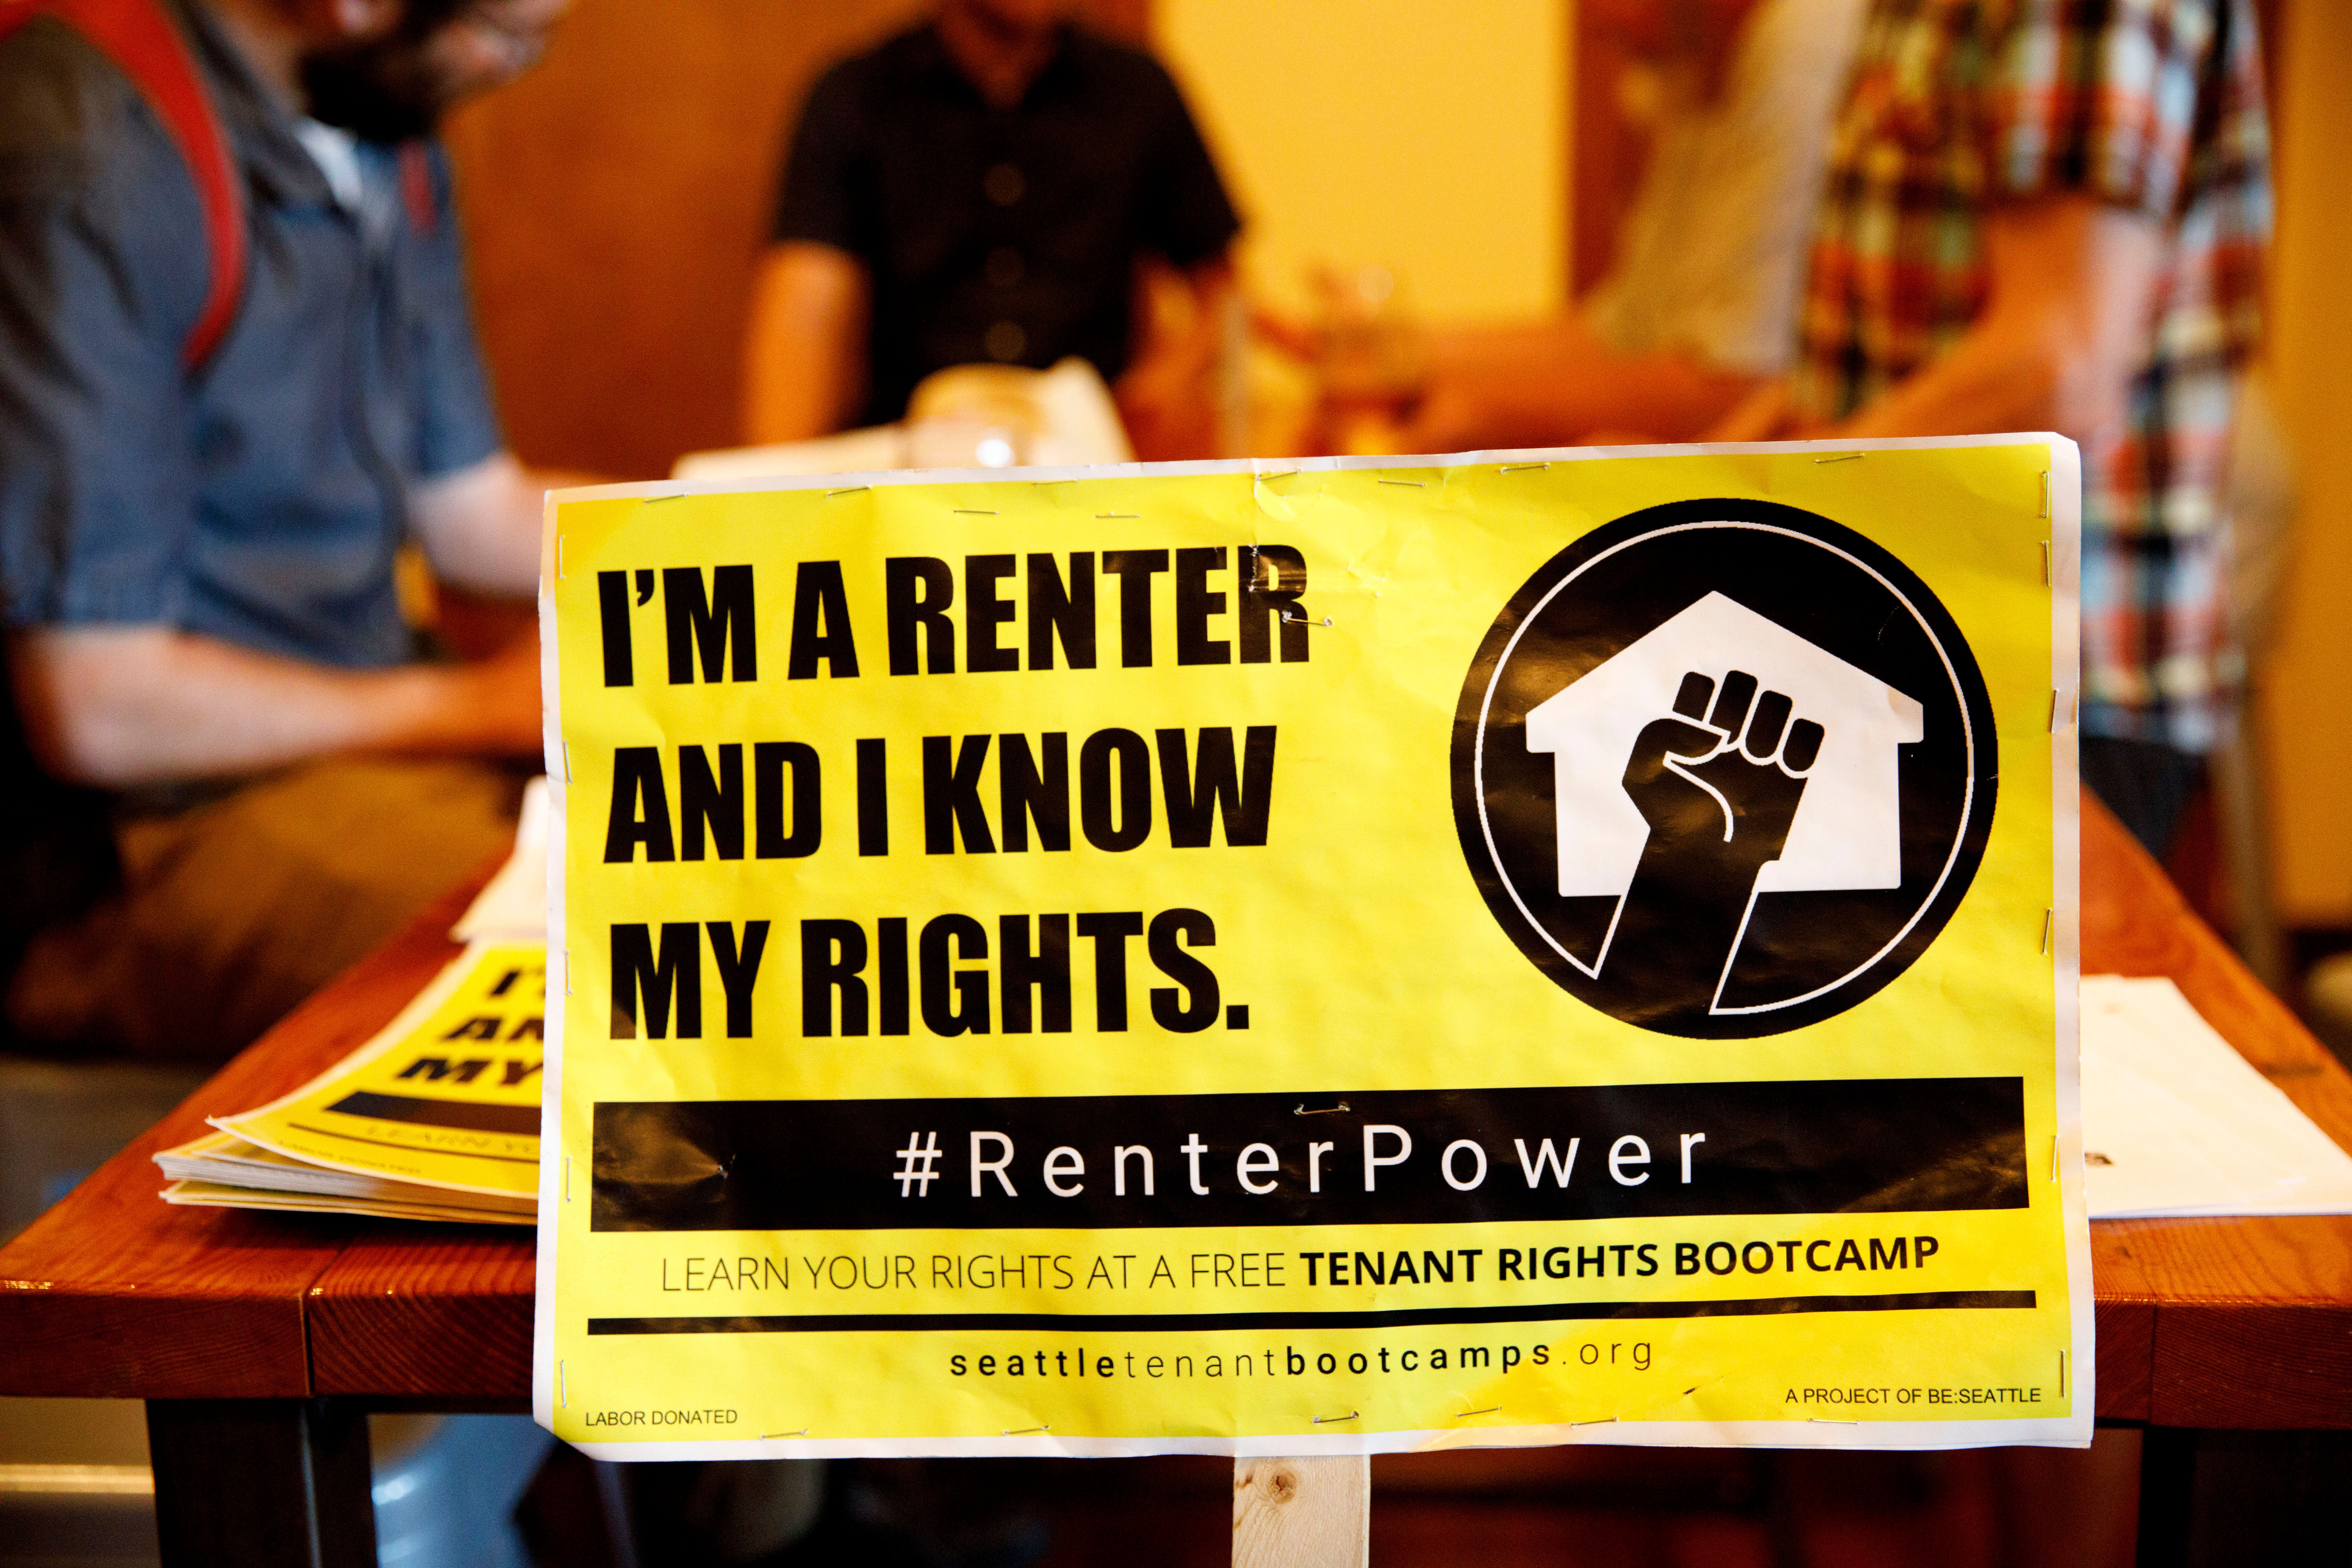 A sign rests on the table during a Tenant Rights Bootcamp on Wednesday, July 25, 2018 at Schilling Cider House in Fremont, Seattle, WA. The event was hosted by Be:Seattle and provided information on Seattle tenants rights. (Sarah Hoffman/Crosscut)